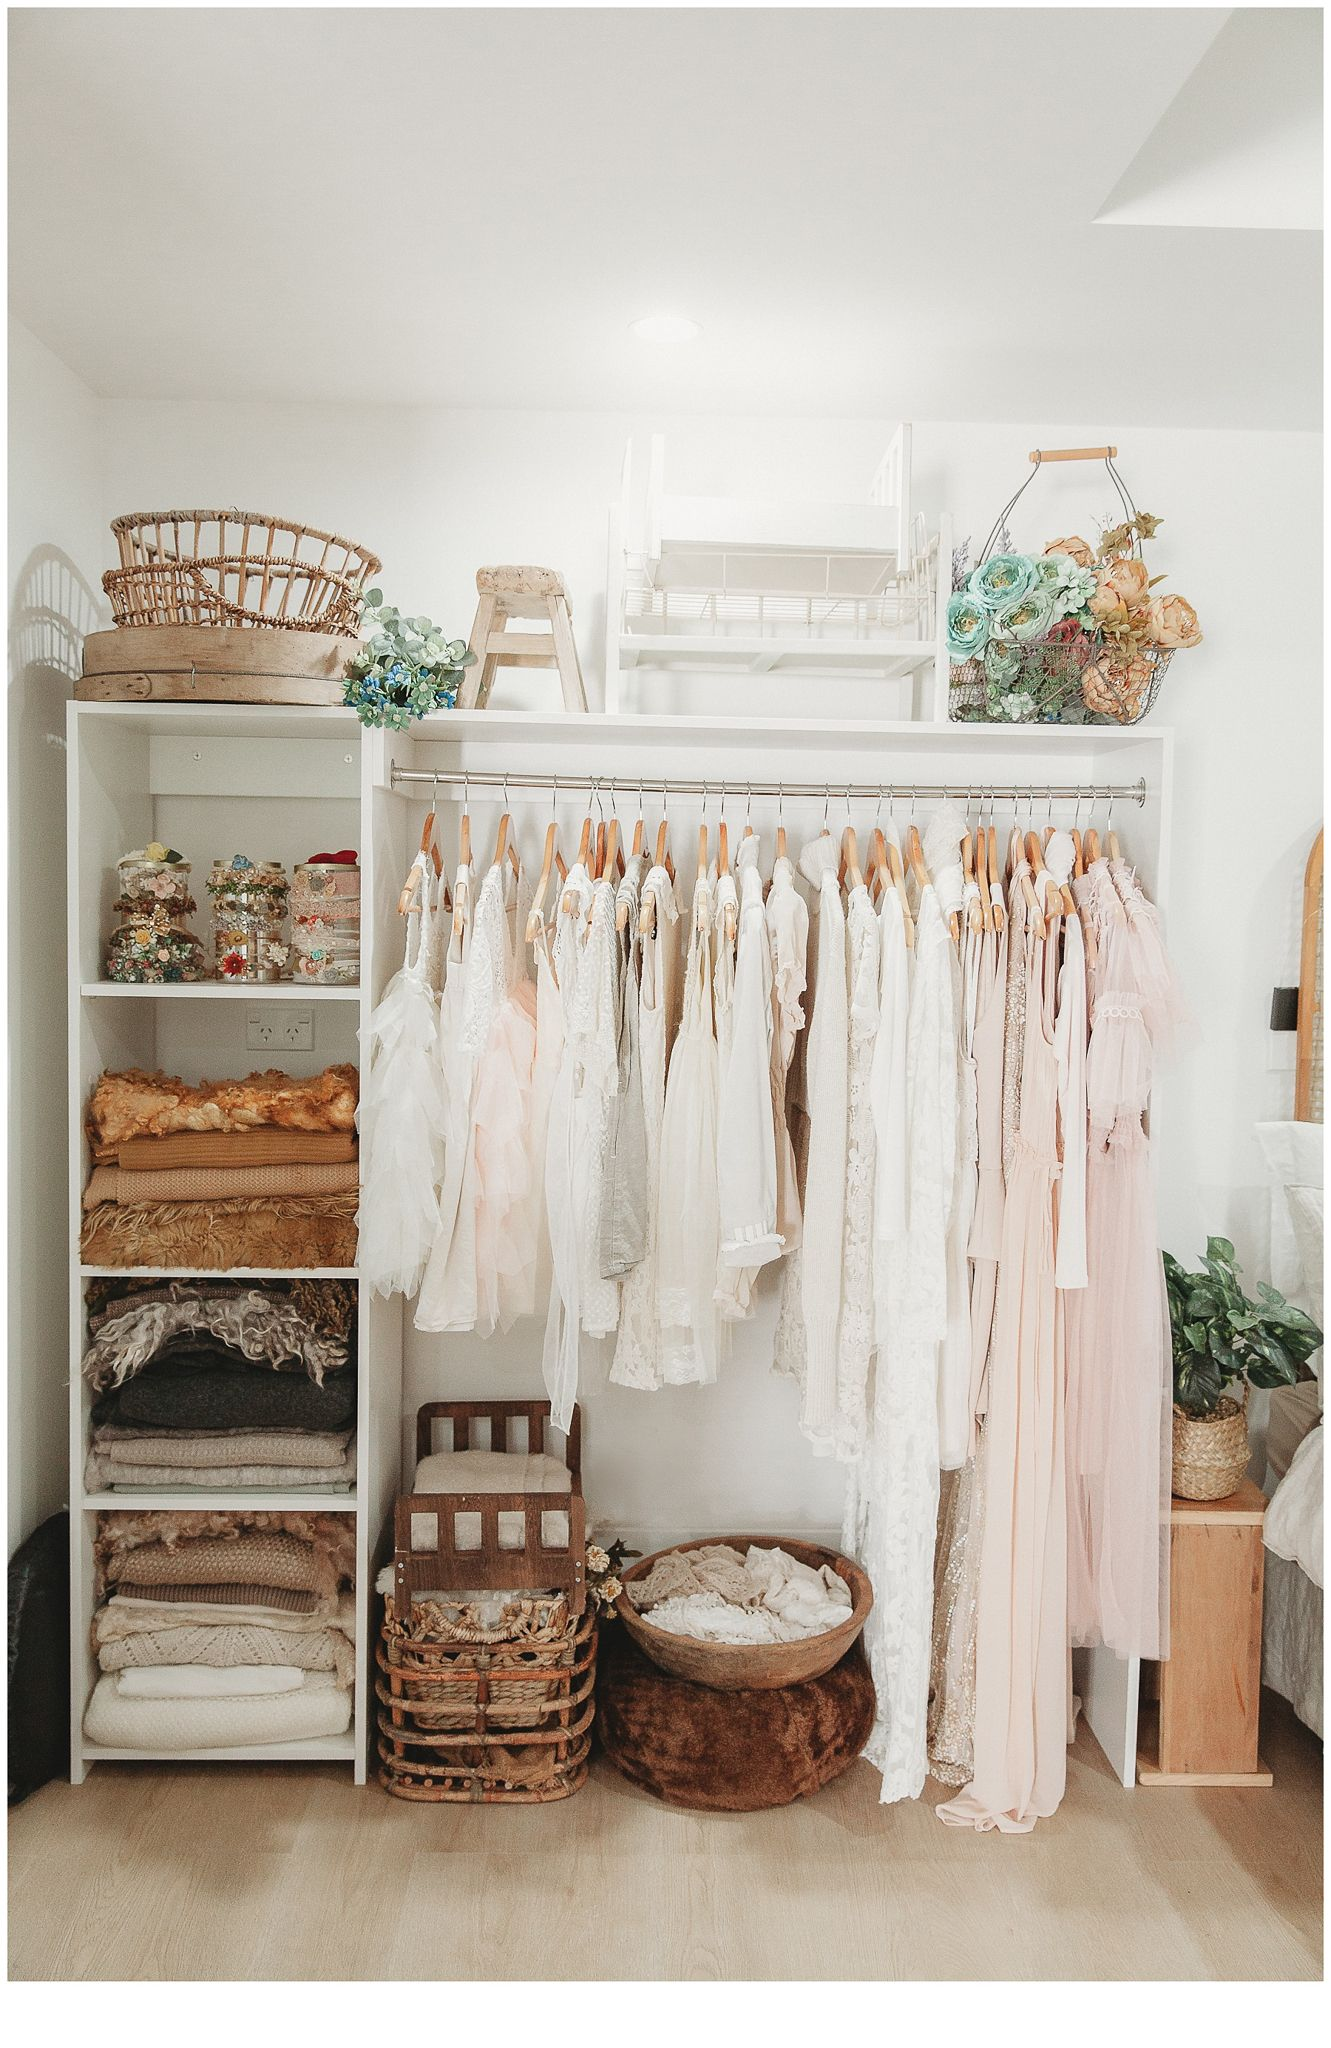 stacey lake photography studio wardrobe filled with beautiful earthy tones, rustic props and wooly layers